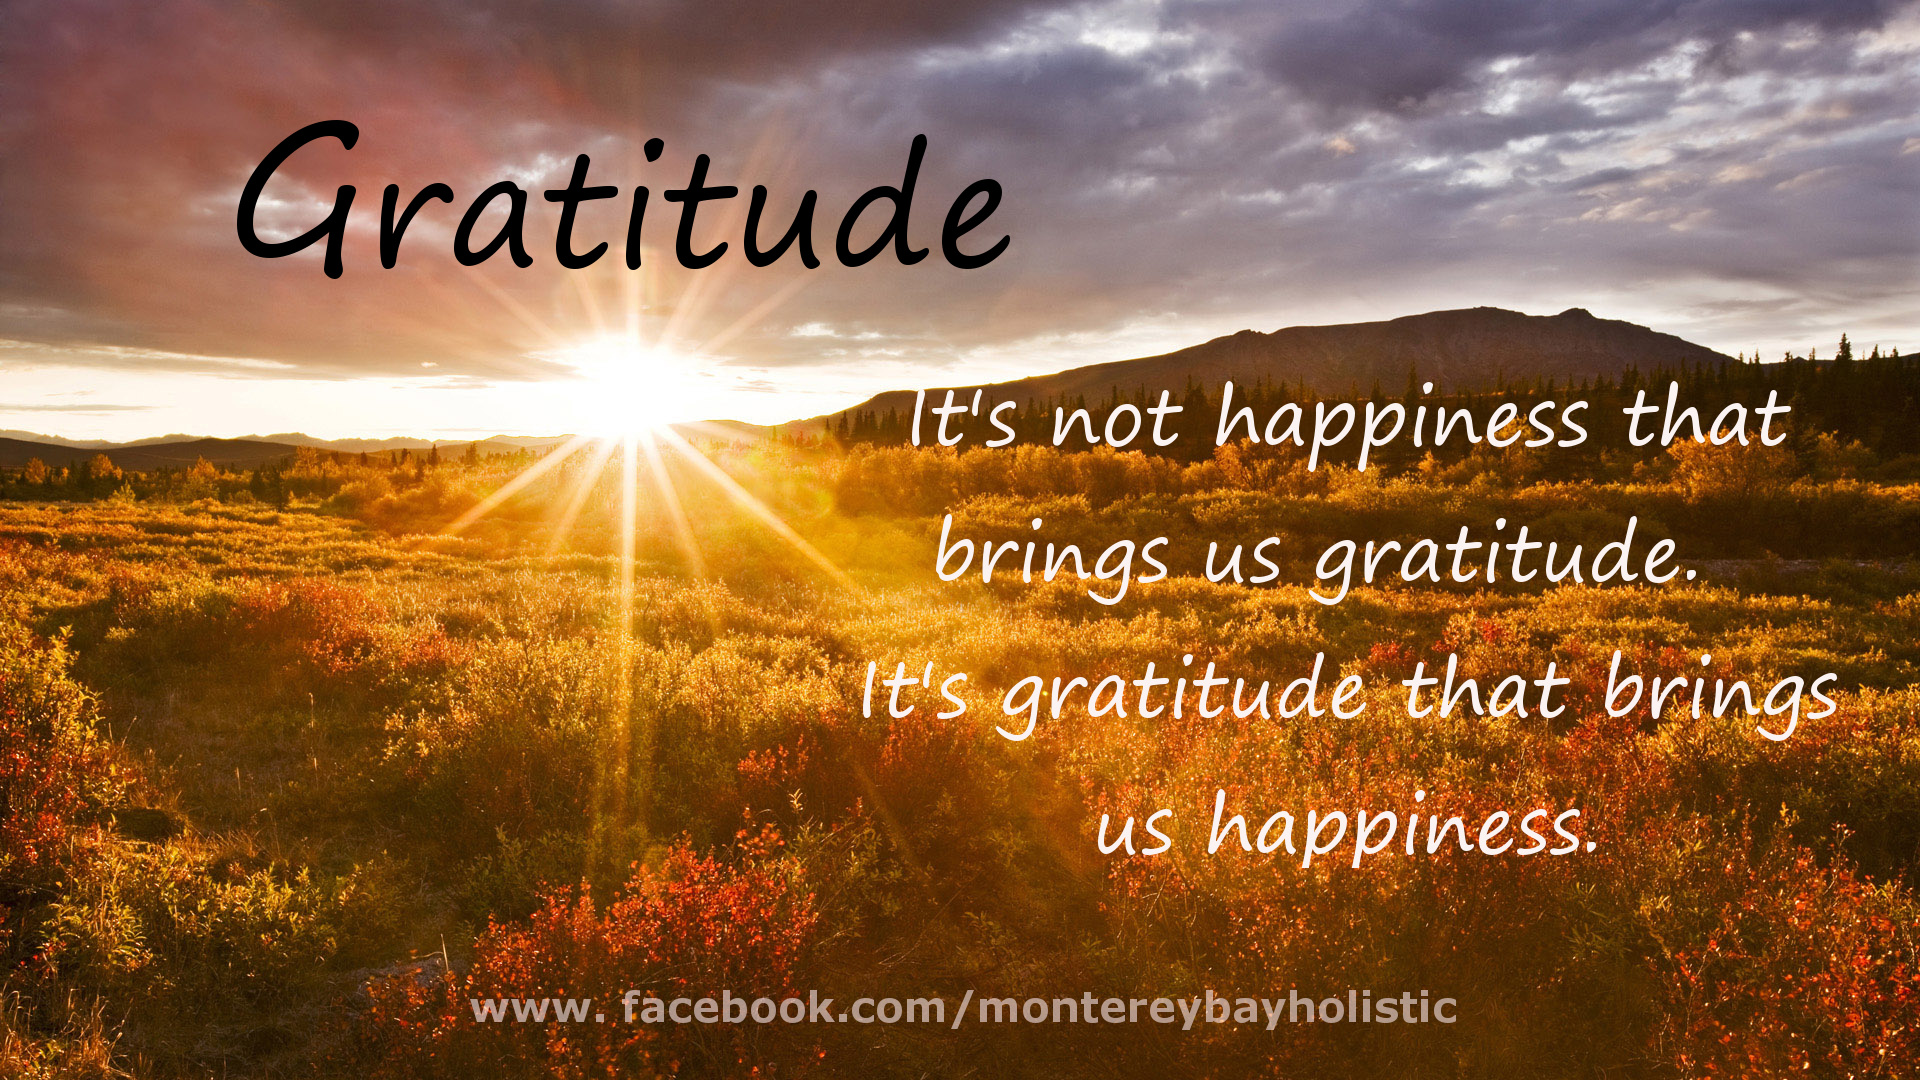 ... that brings us gratitude, it's gratitude that brings us happiness